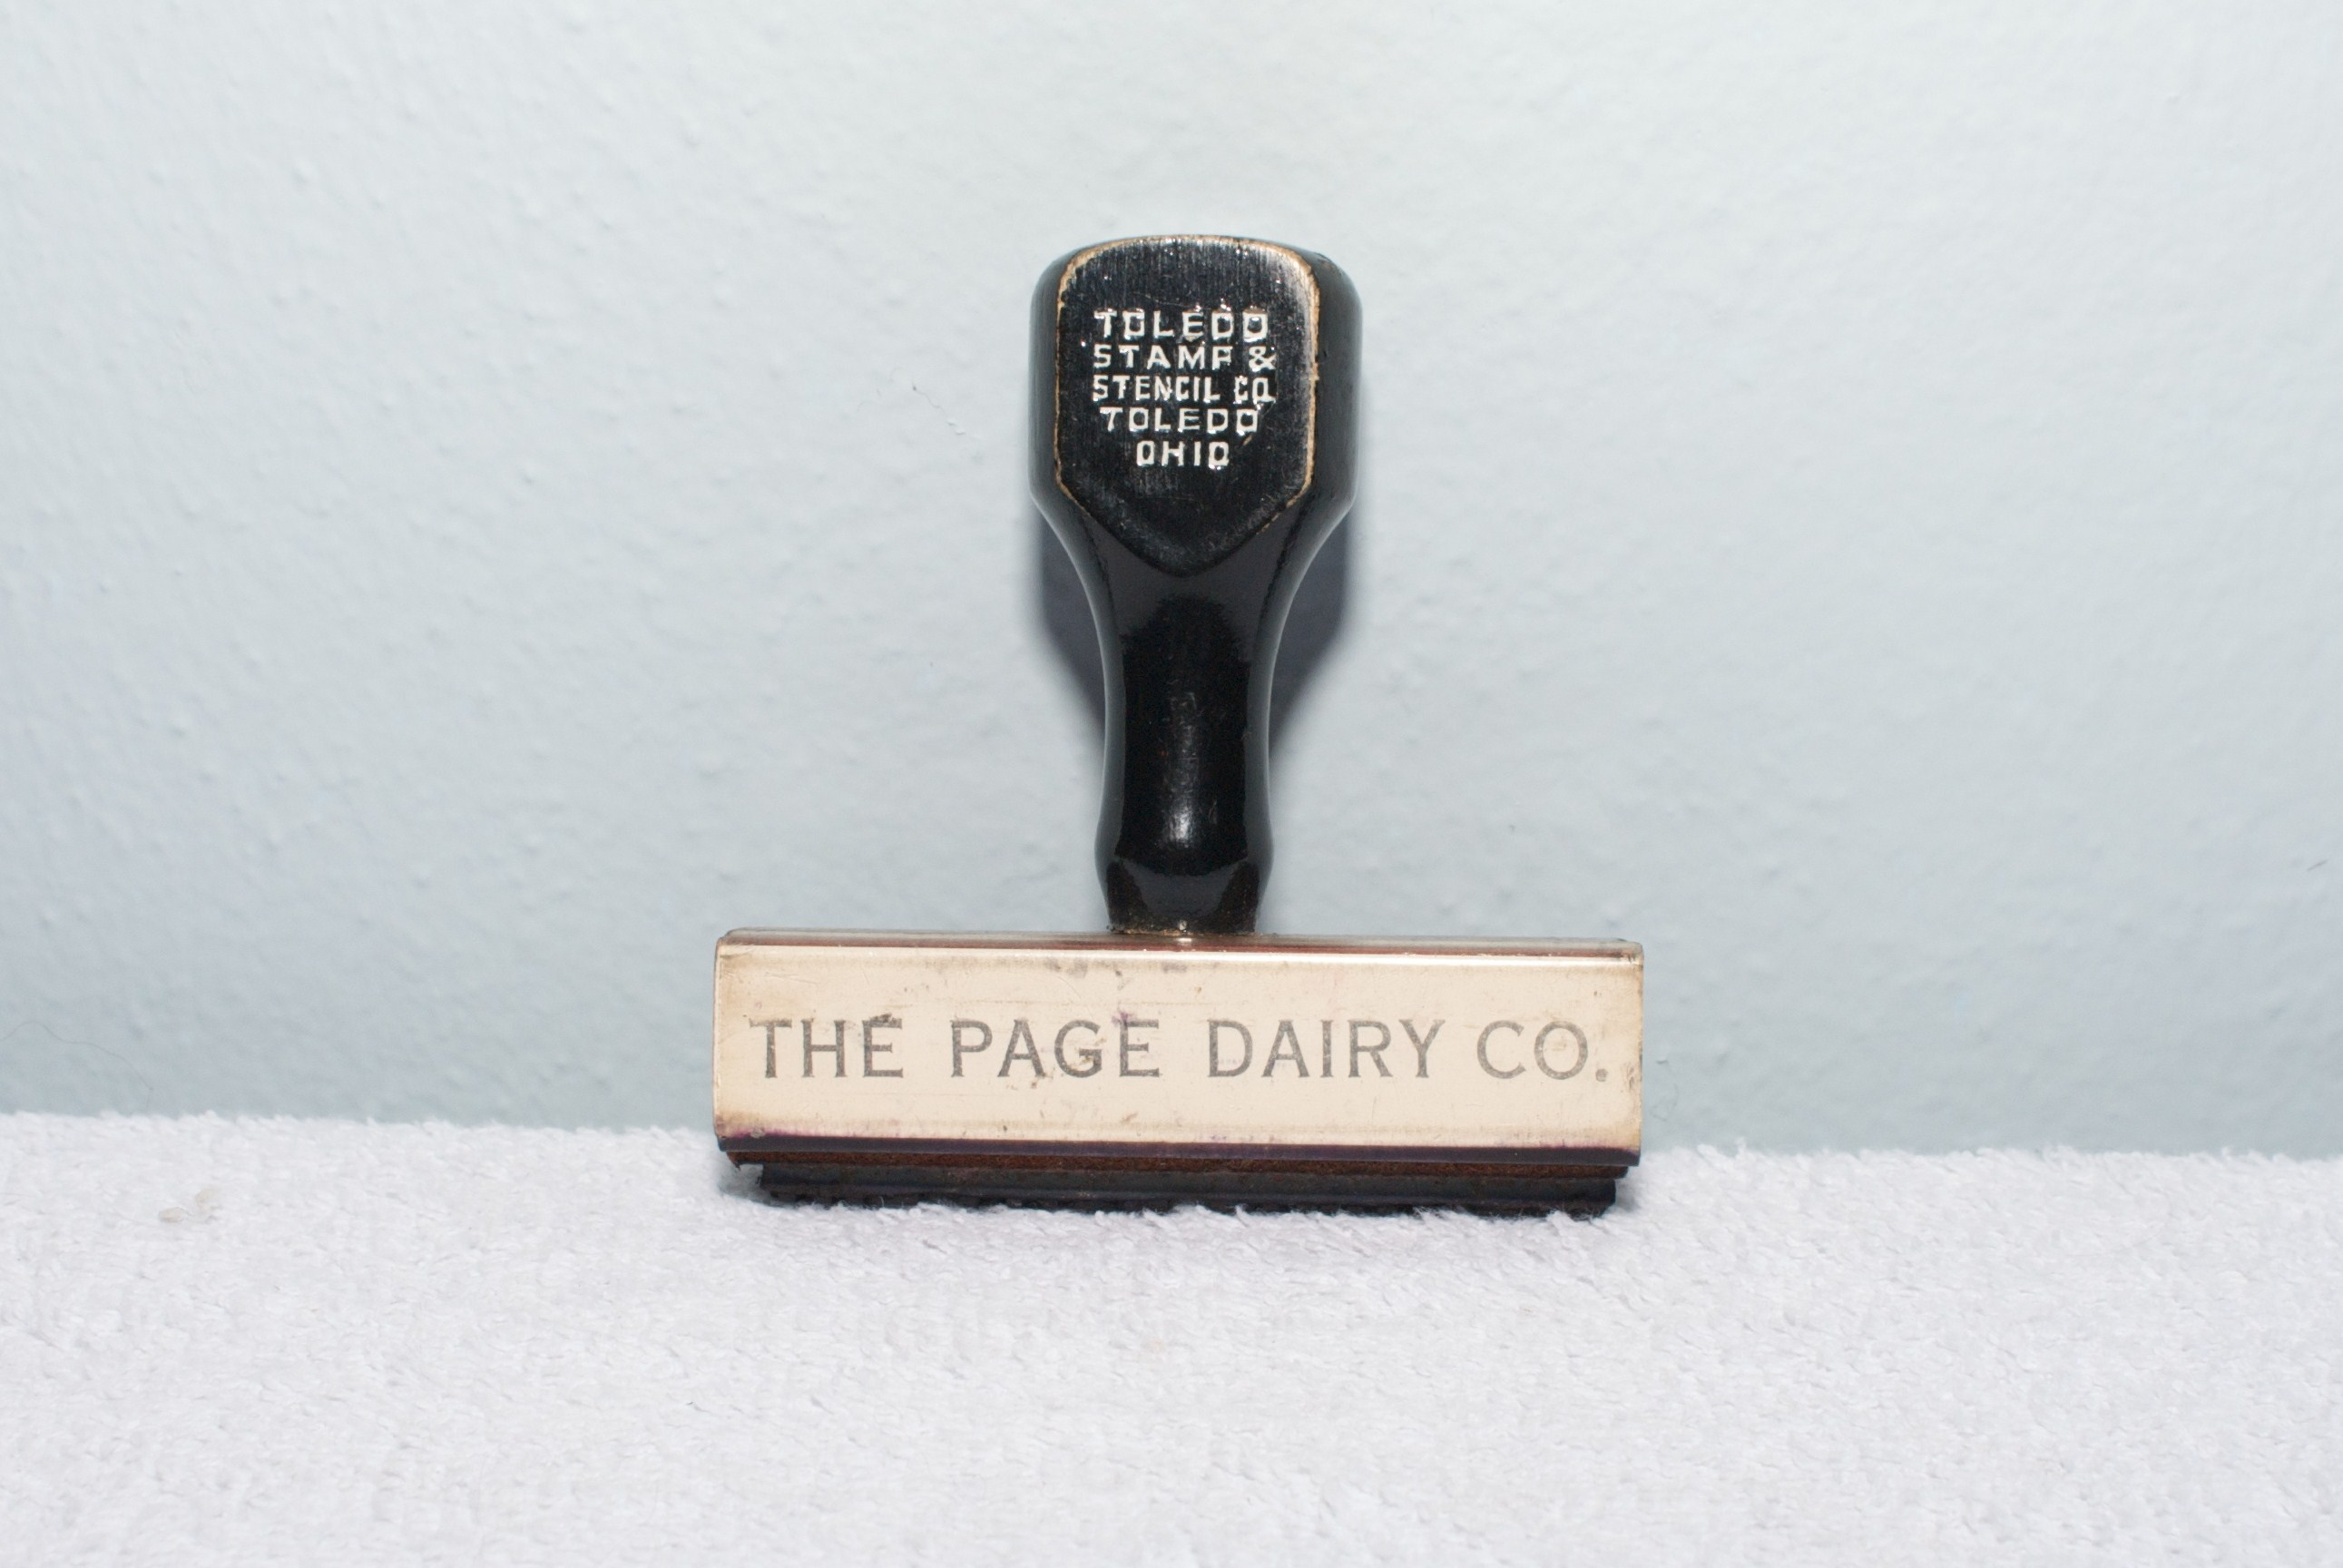 The Page Dairy Co stamp